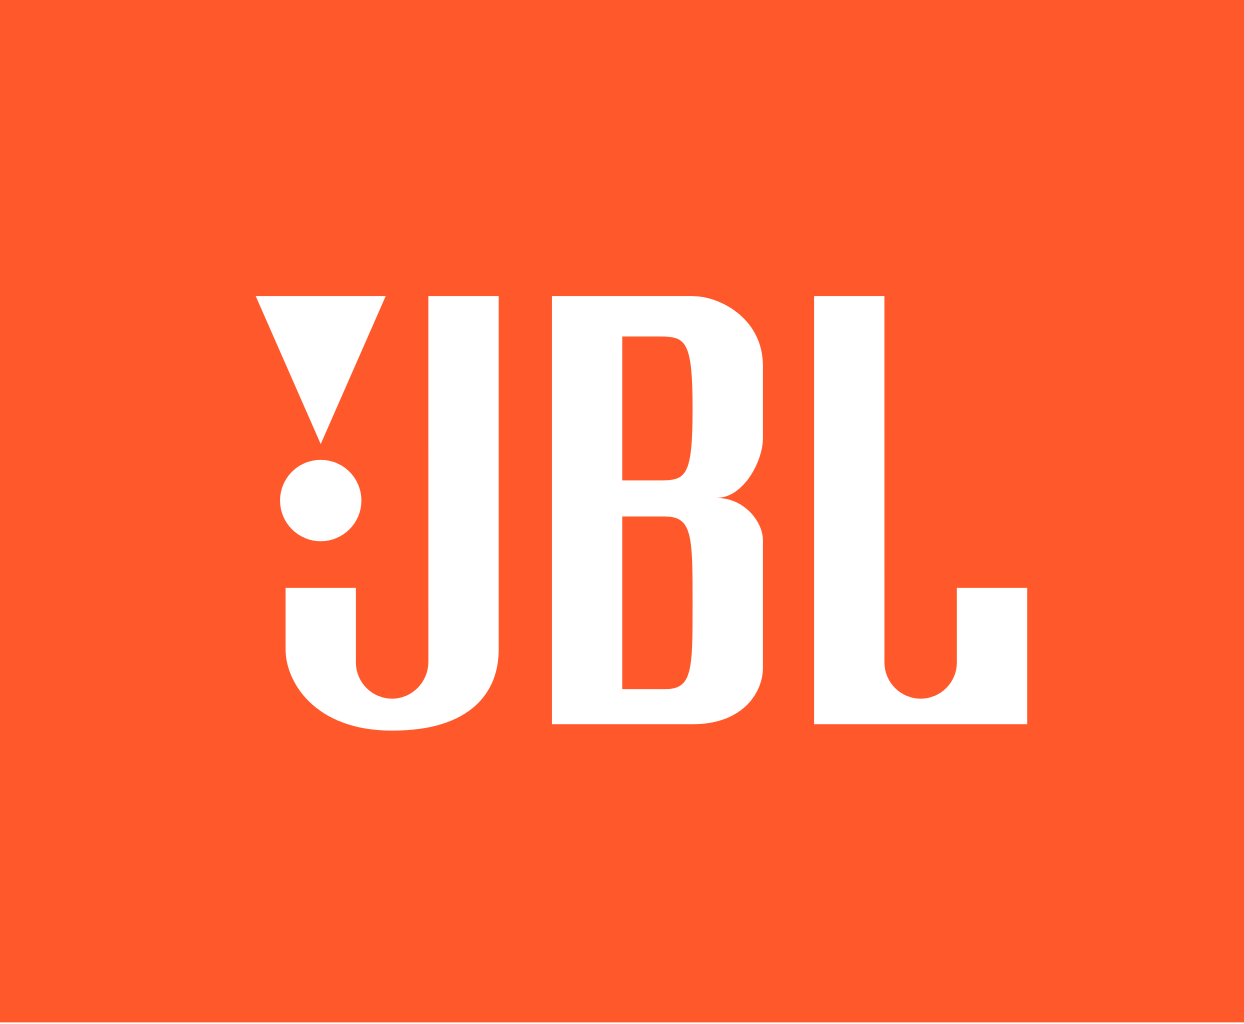 JBL Logo and HQ Wallpapers